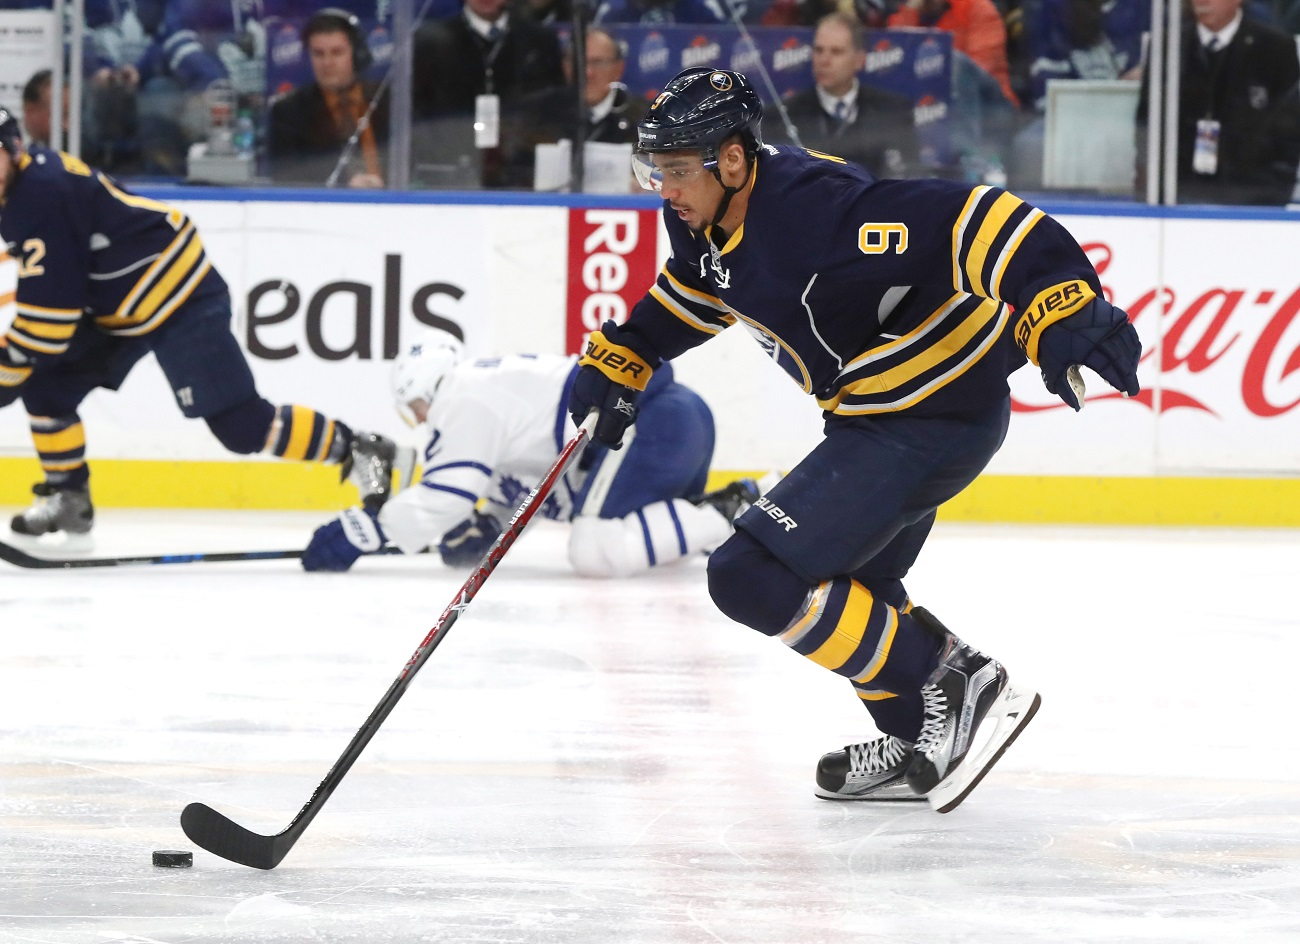 Ryan O'Reilly (90), Rasmus Ristolainen (55) and Jason Pominville are among the 12 players signed past this season. (Getty Images)